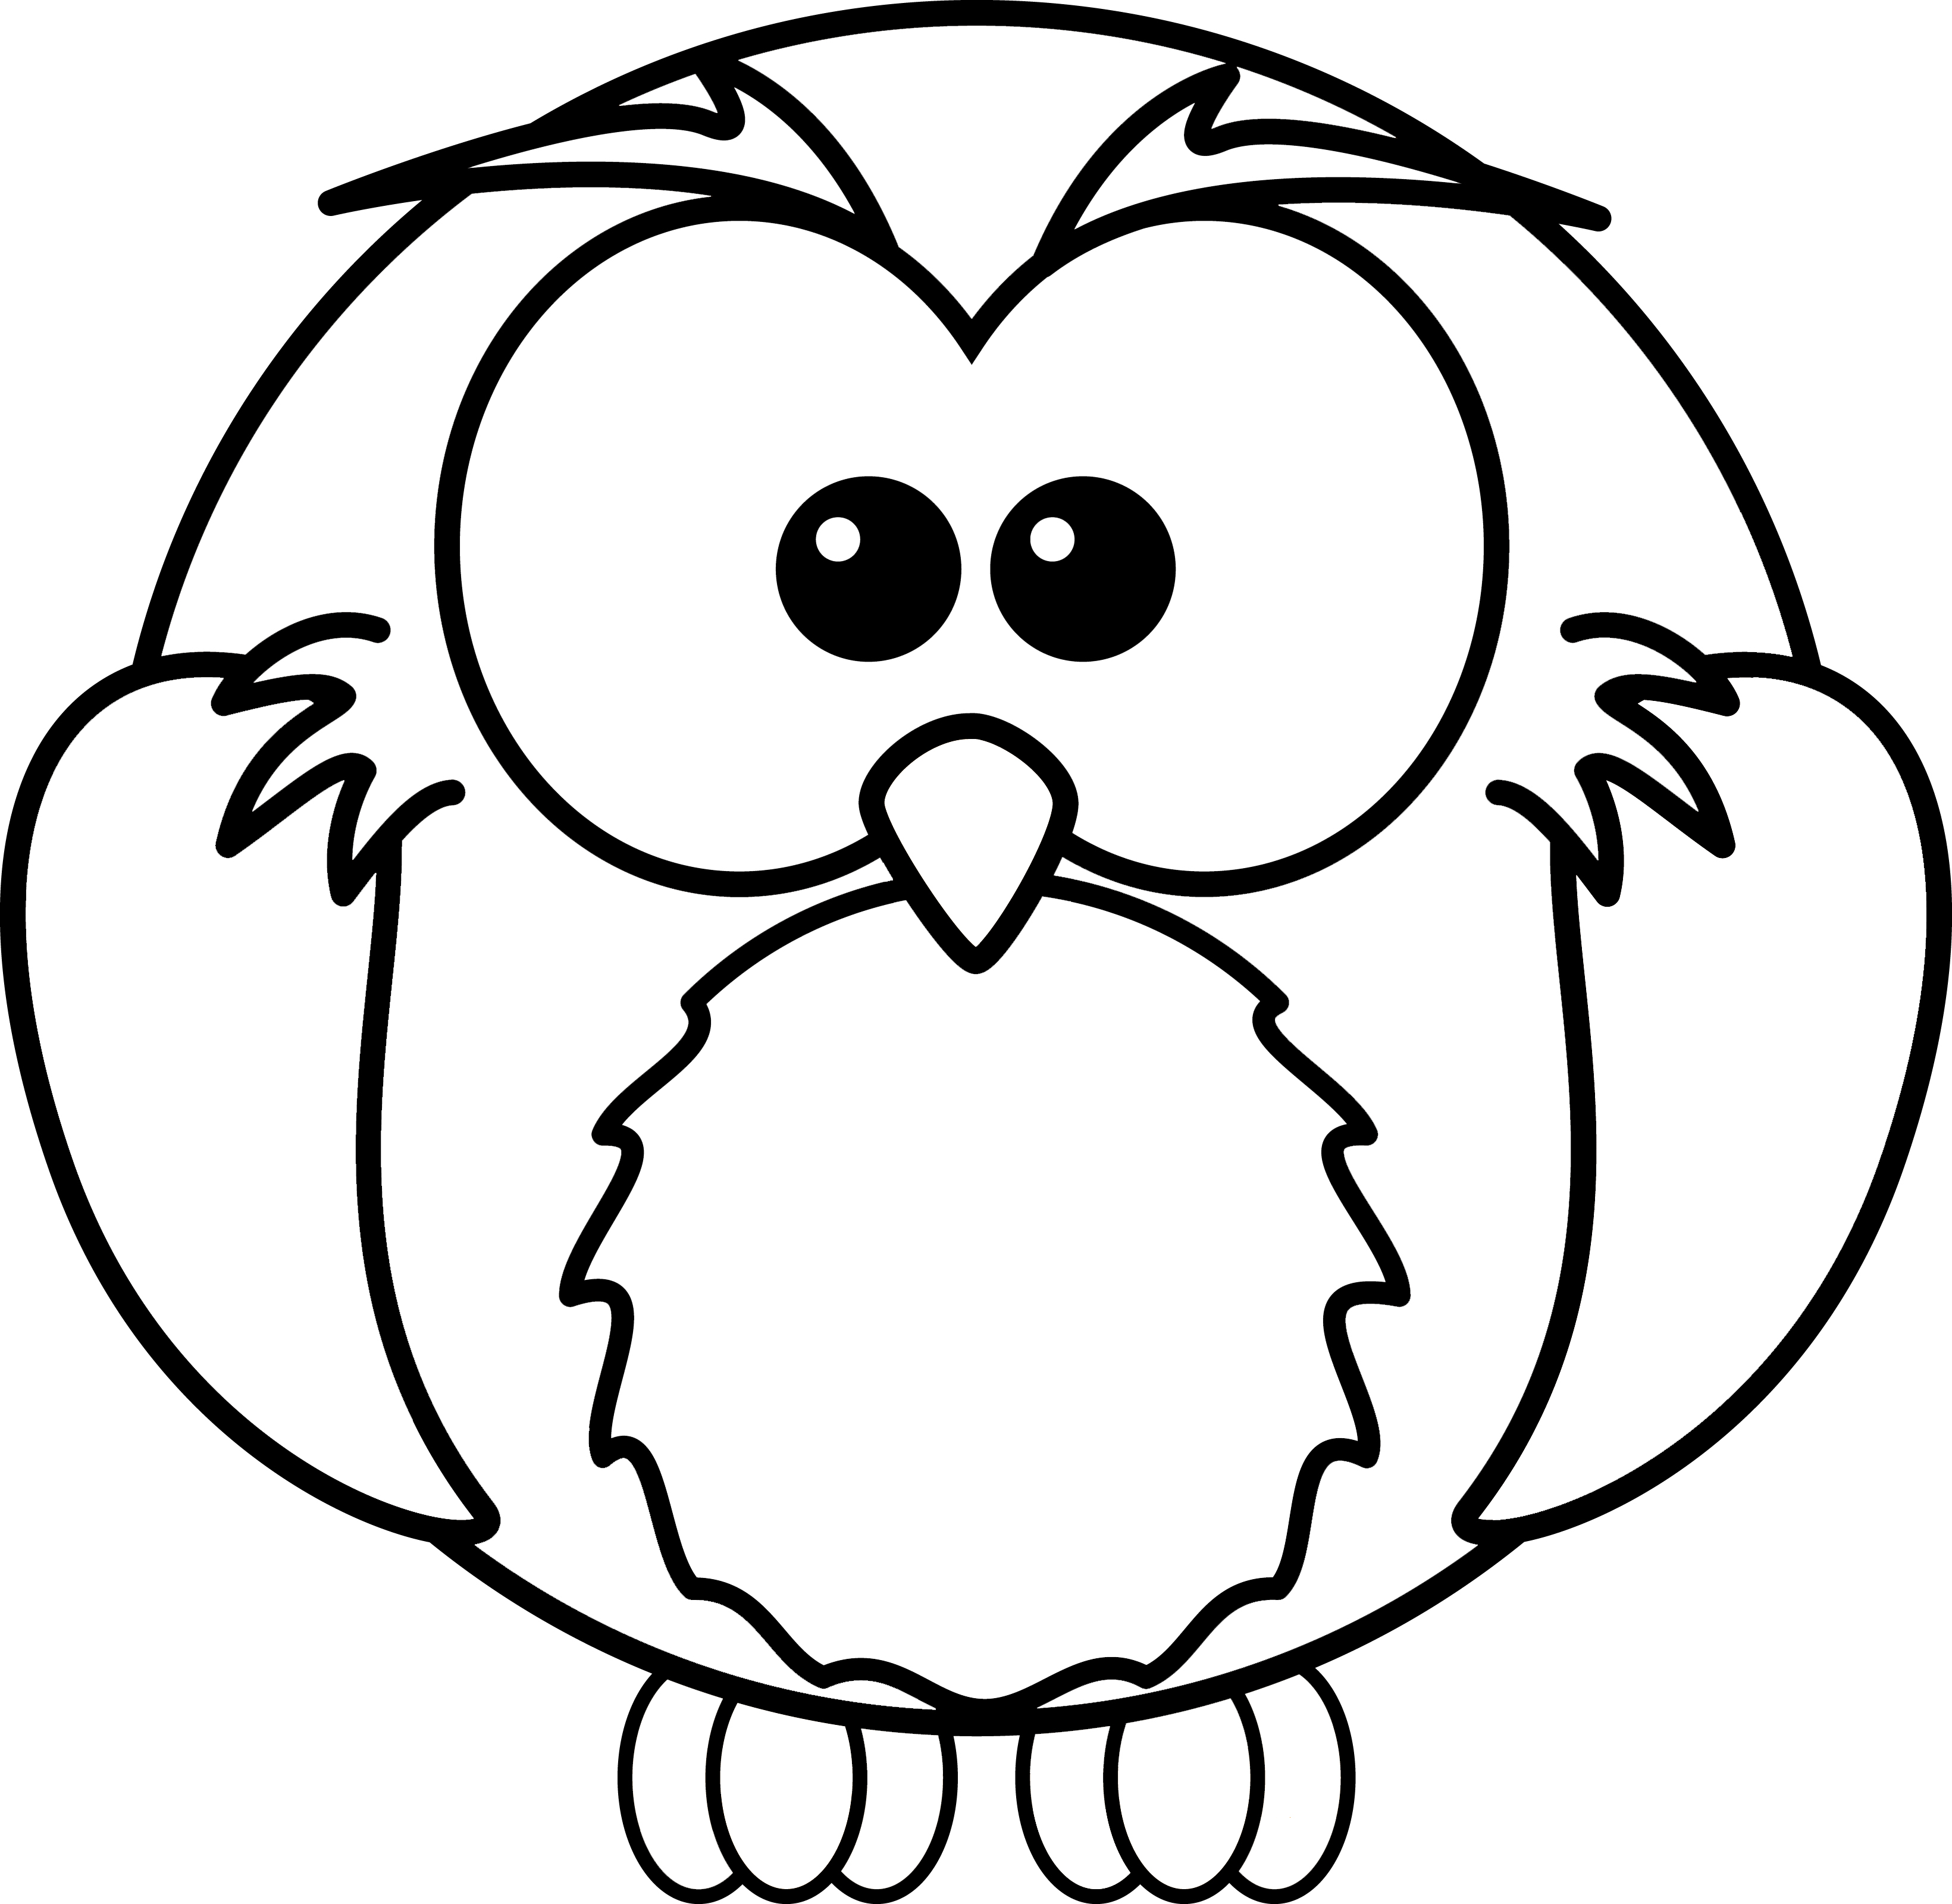 3281x3200 Great Images Of Coloring Pages Inspiring Color